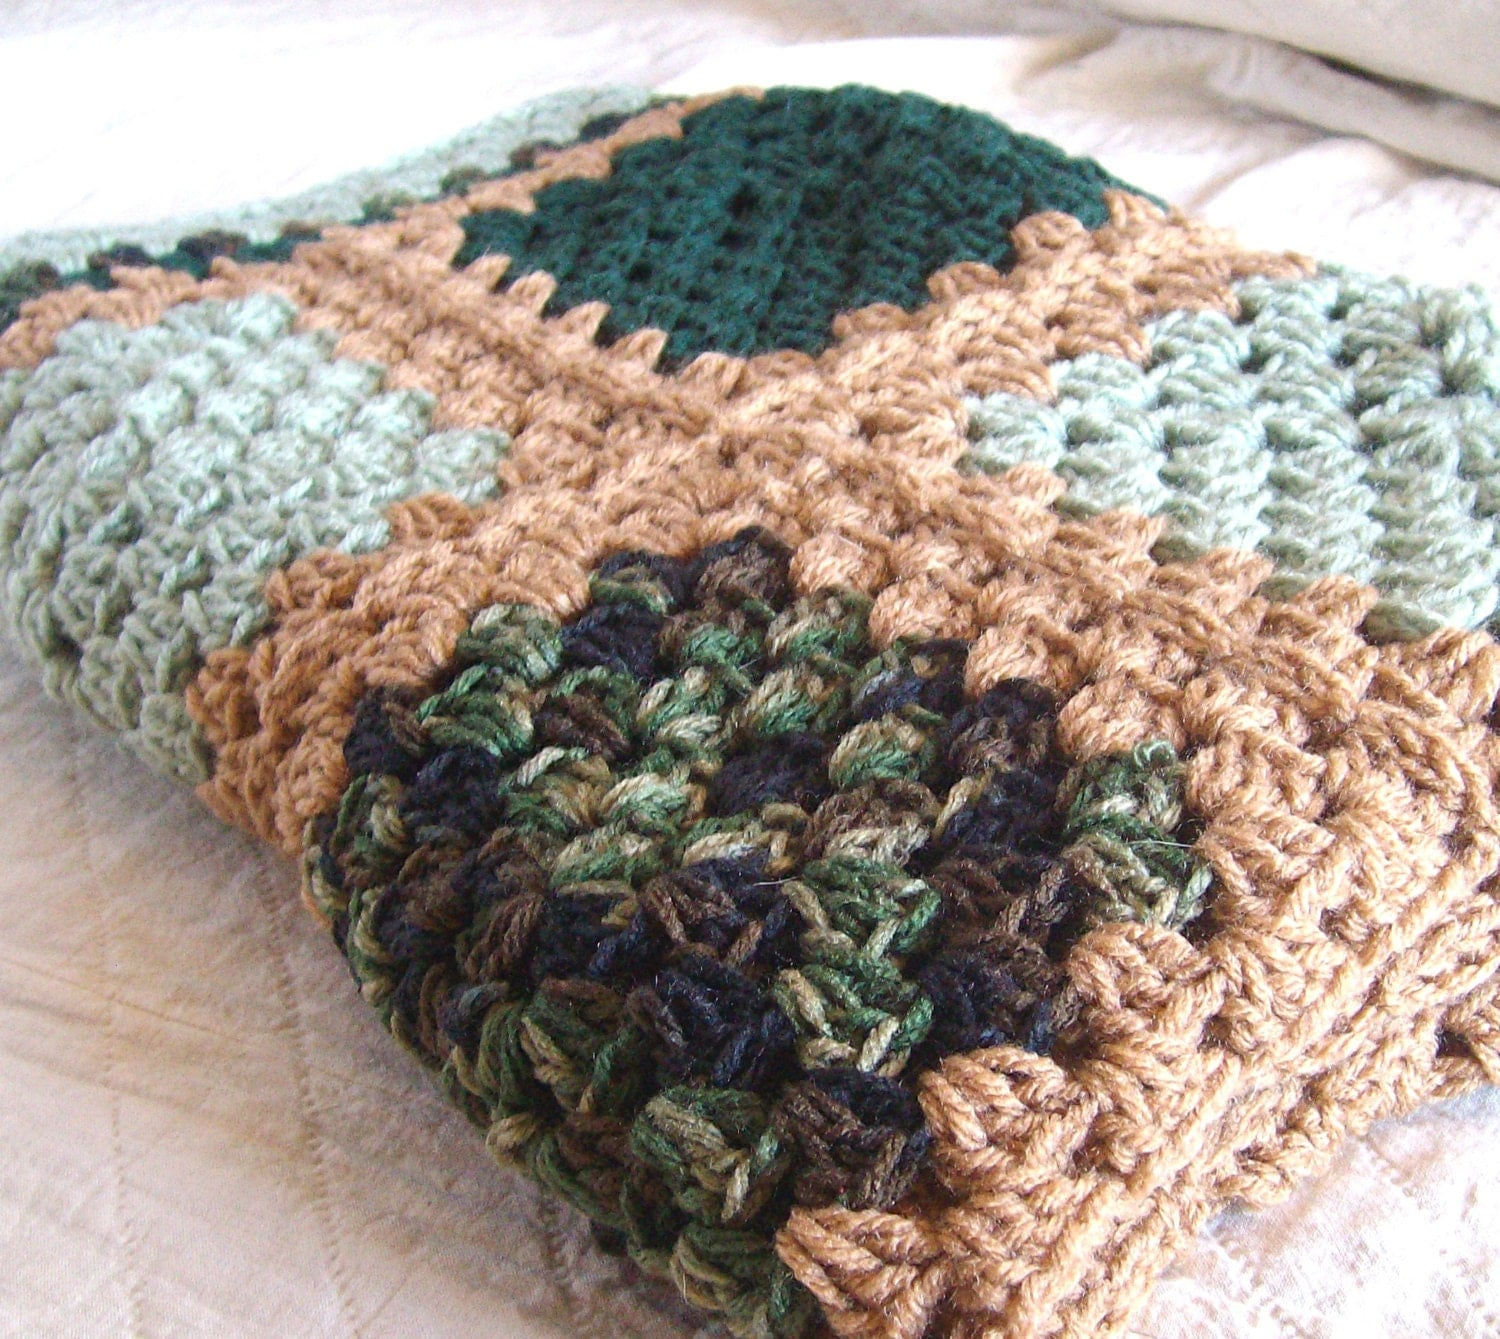 "Crochet Granny Square Blanket- Granny Square Afghan / Moss Green Brown Forest Green Crochet Blanket - Rustic Cabin Decor 36"" x 47"" - ThePrairieCottage"